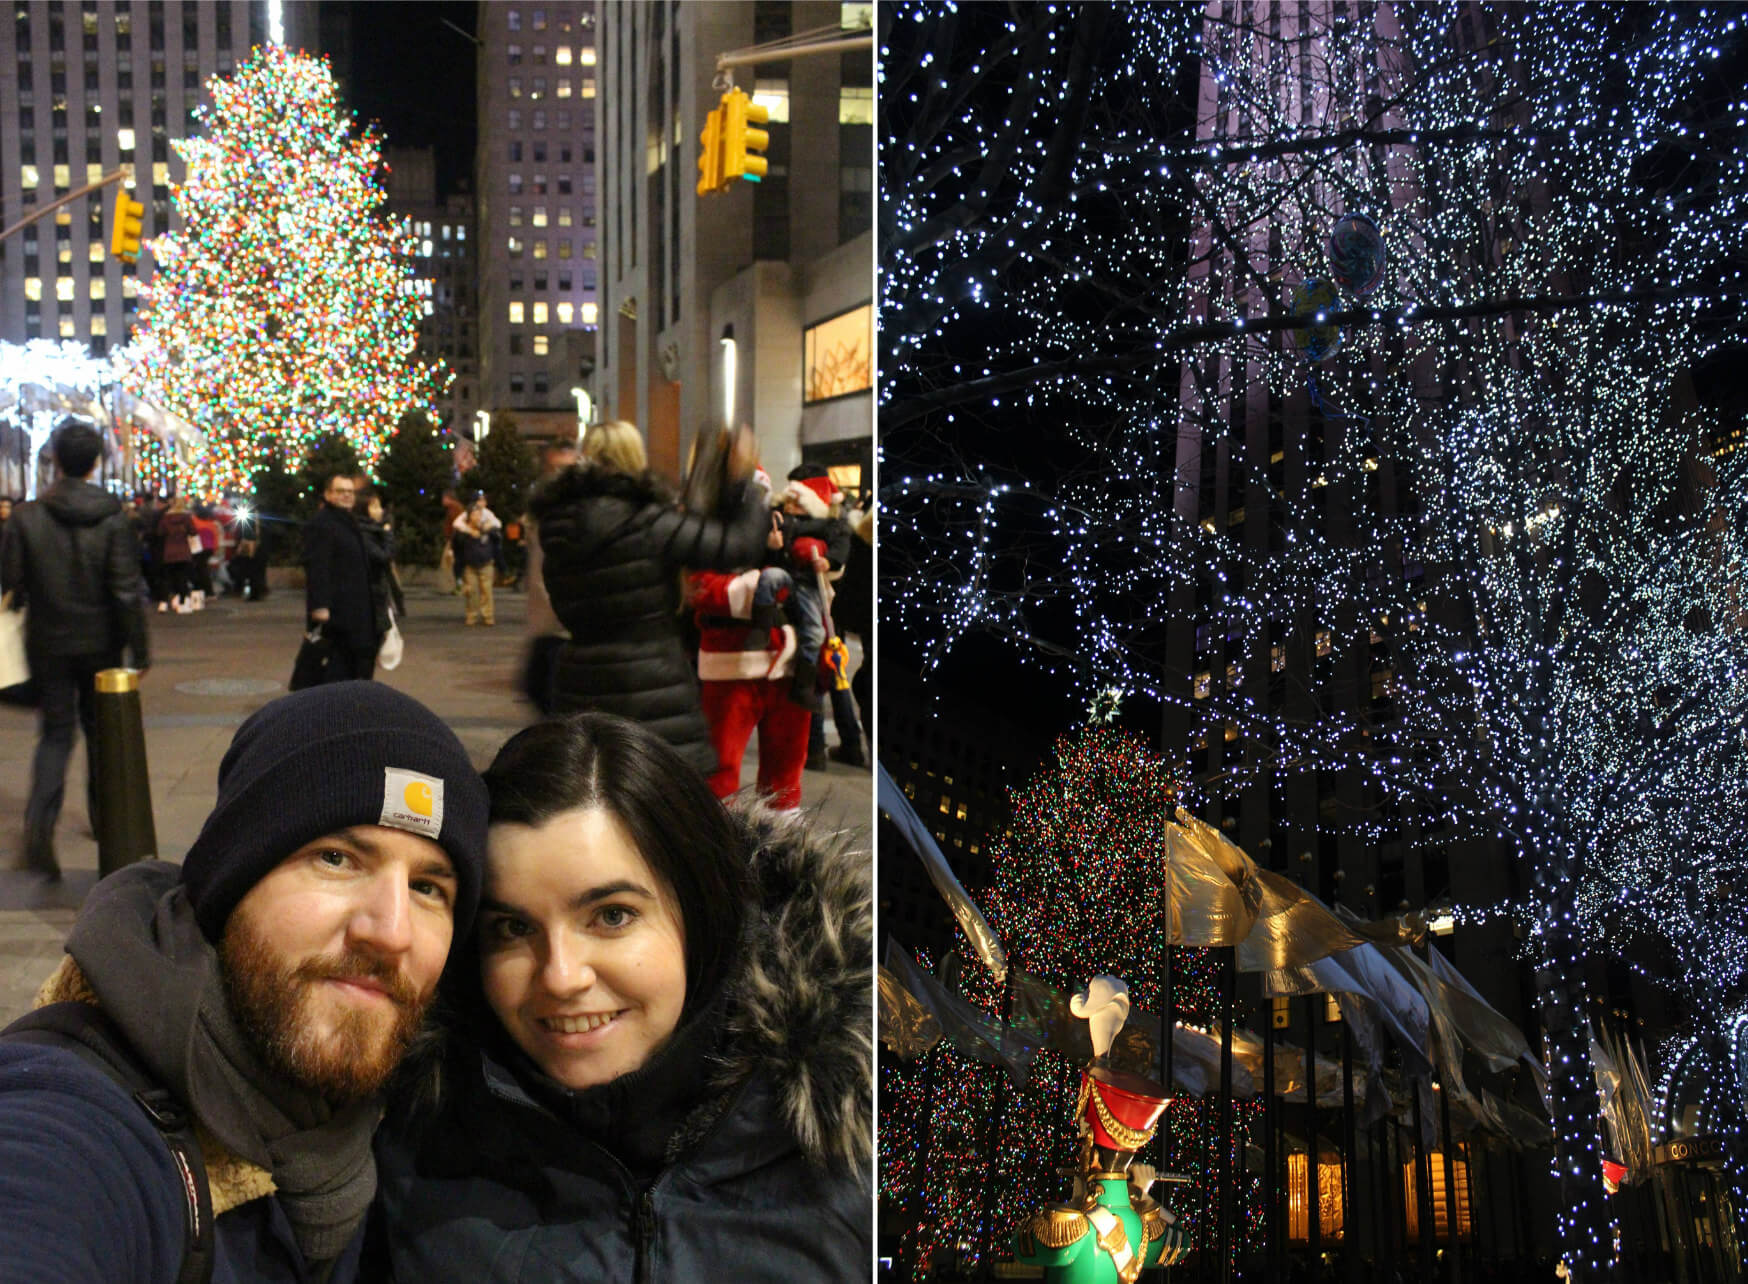 Emma and Allan taking a selfie at theRockefeller Centre Christmas tree